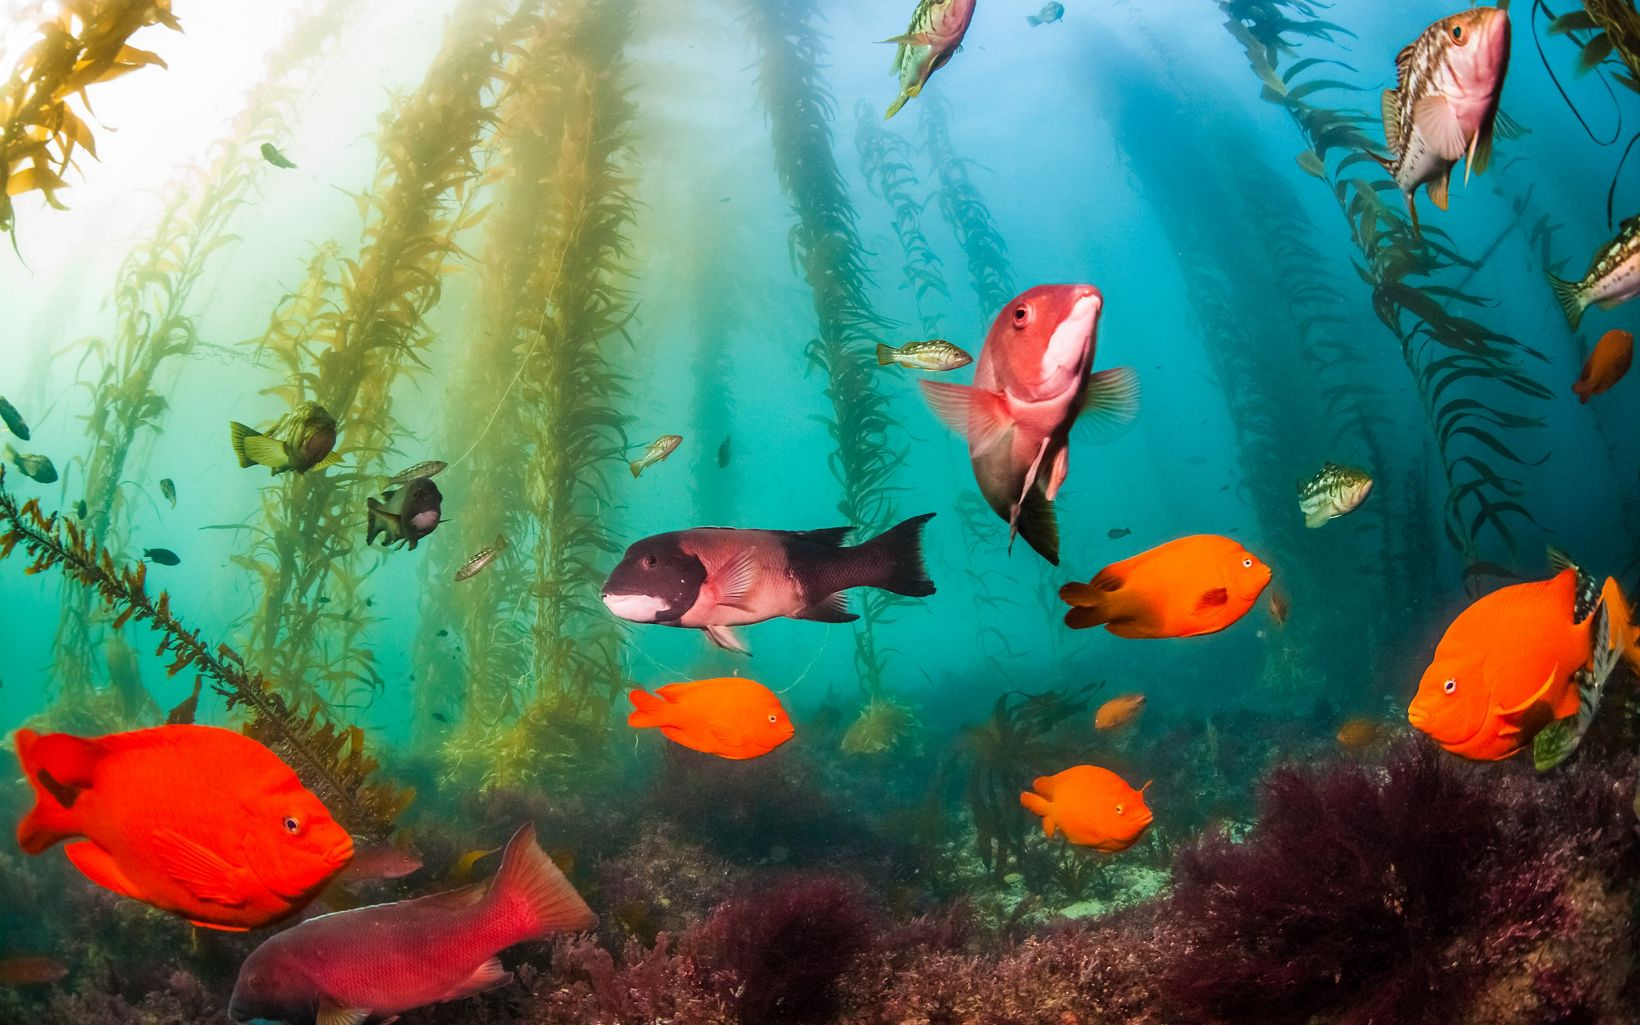 Orange, red and silver fish swimming near the sea floor among tall kelp plants.